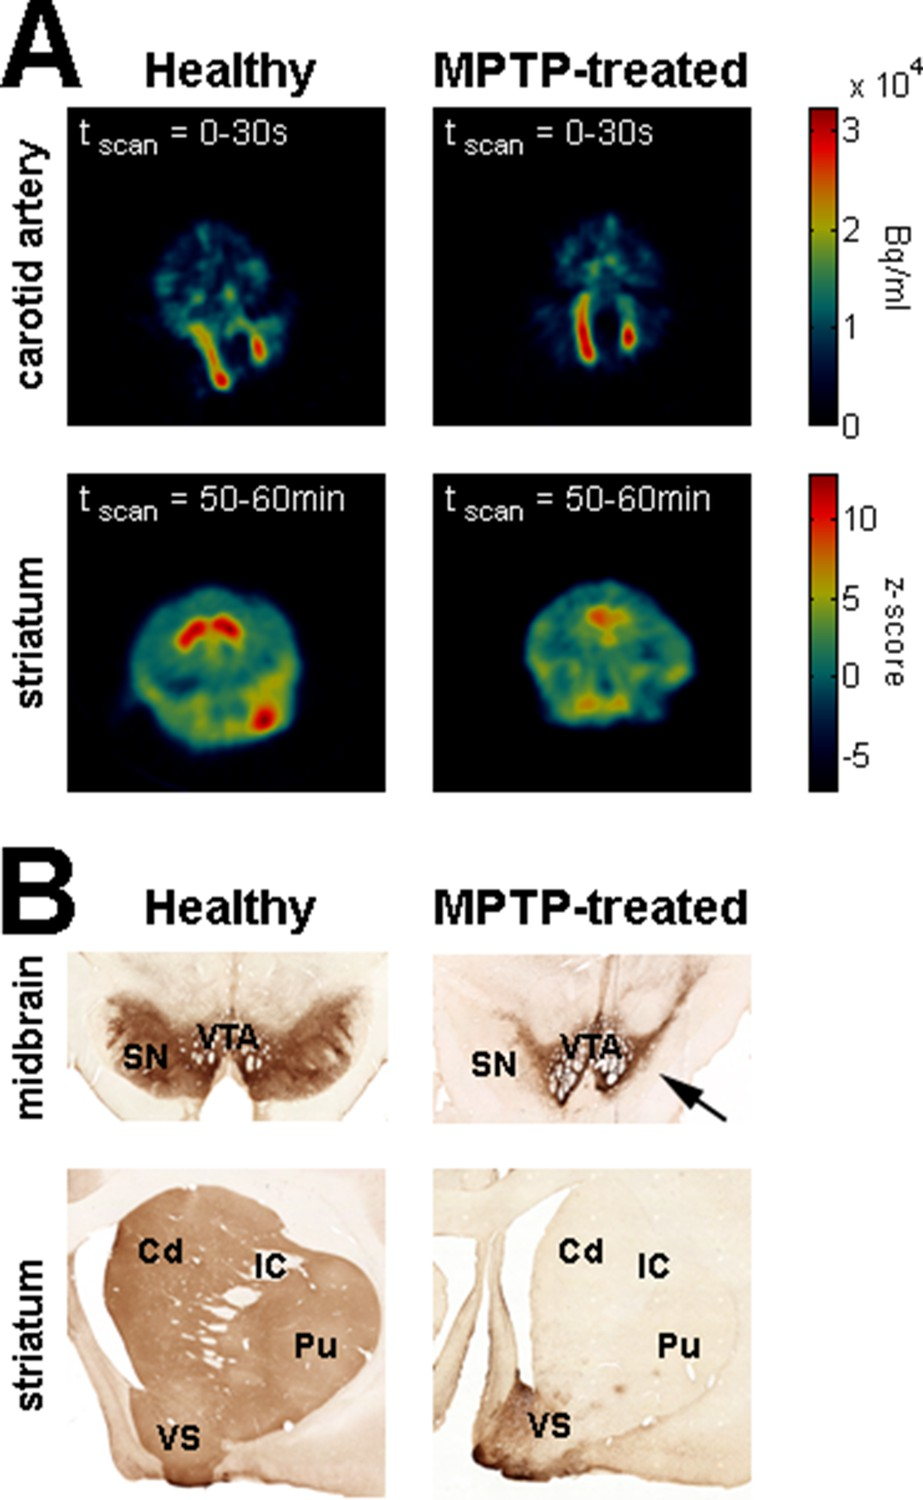 Subthalamic Not Striatal Activity Correlates With Basal Ganglia 06 15 2005 I Went Ahead And Got Quotes For Replacement Equipment Dopamine Depletion Assessment In Parkinsonism